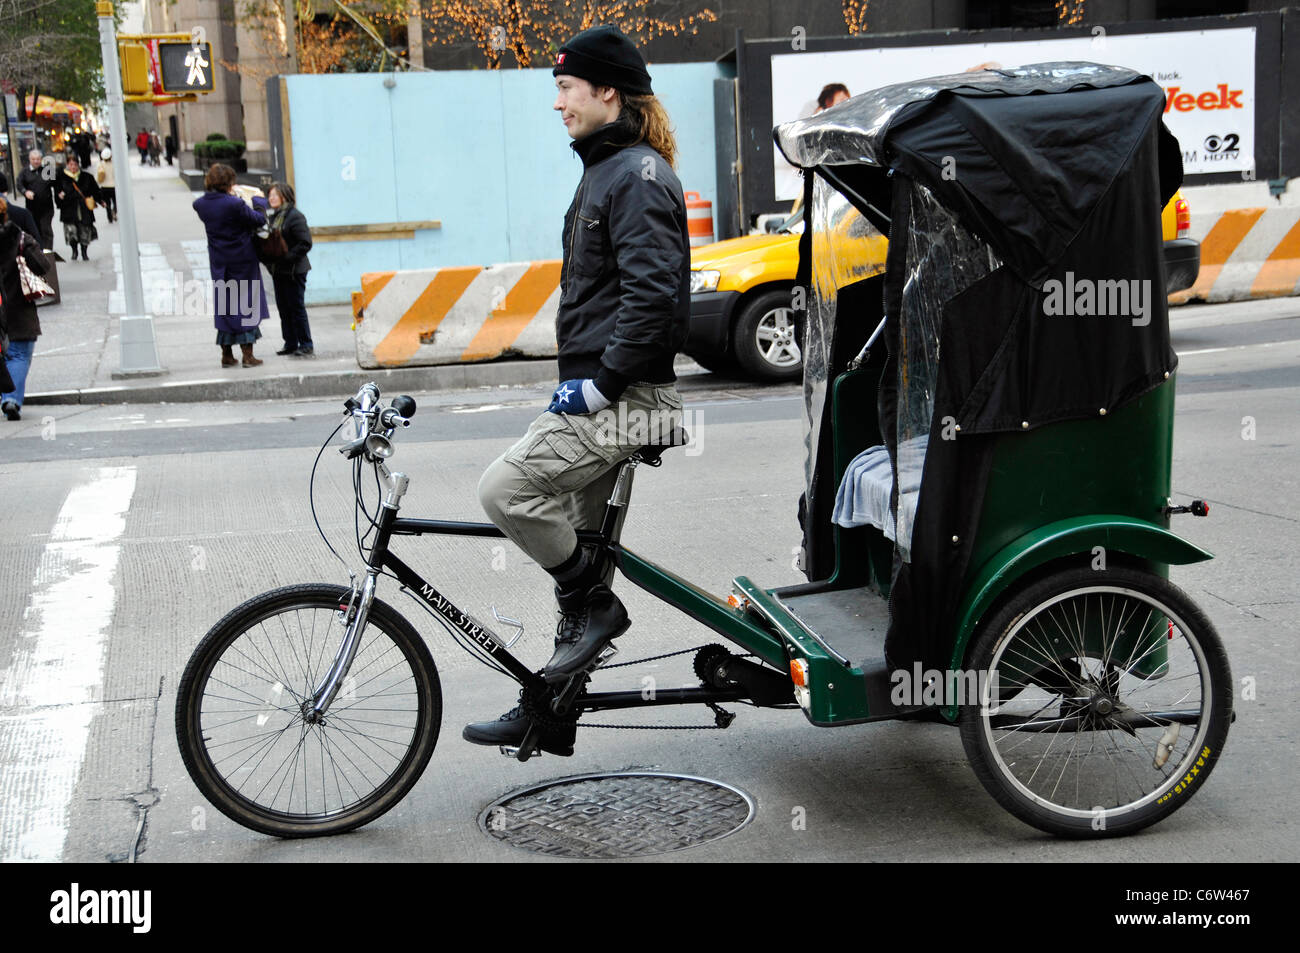 Tricycle taxi- pedicab in New York City, Manhattan - Stock Image